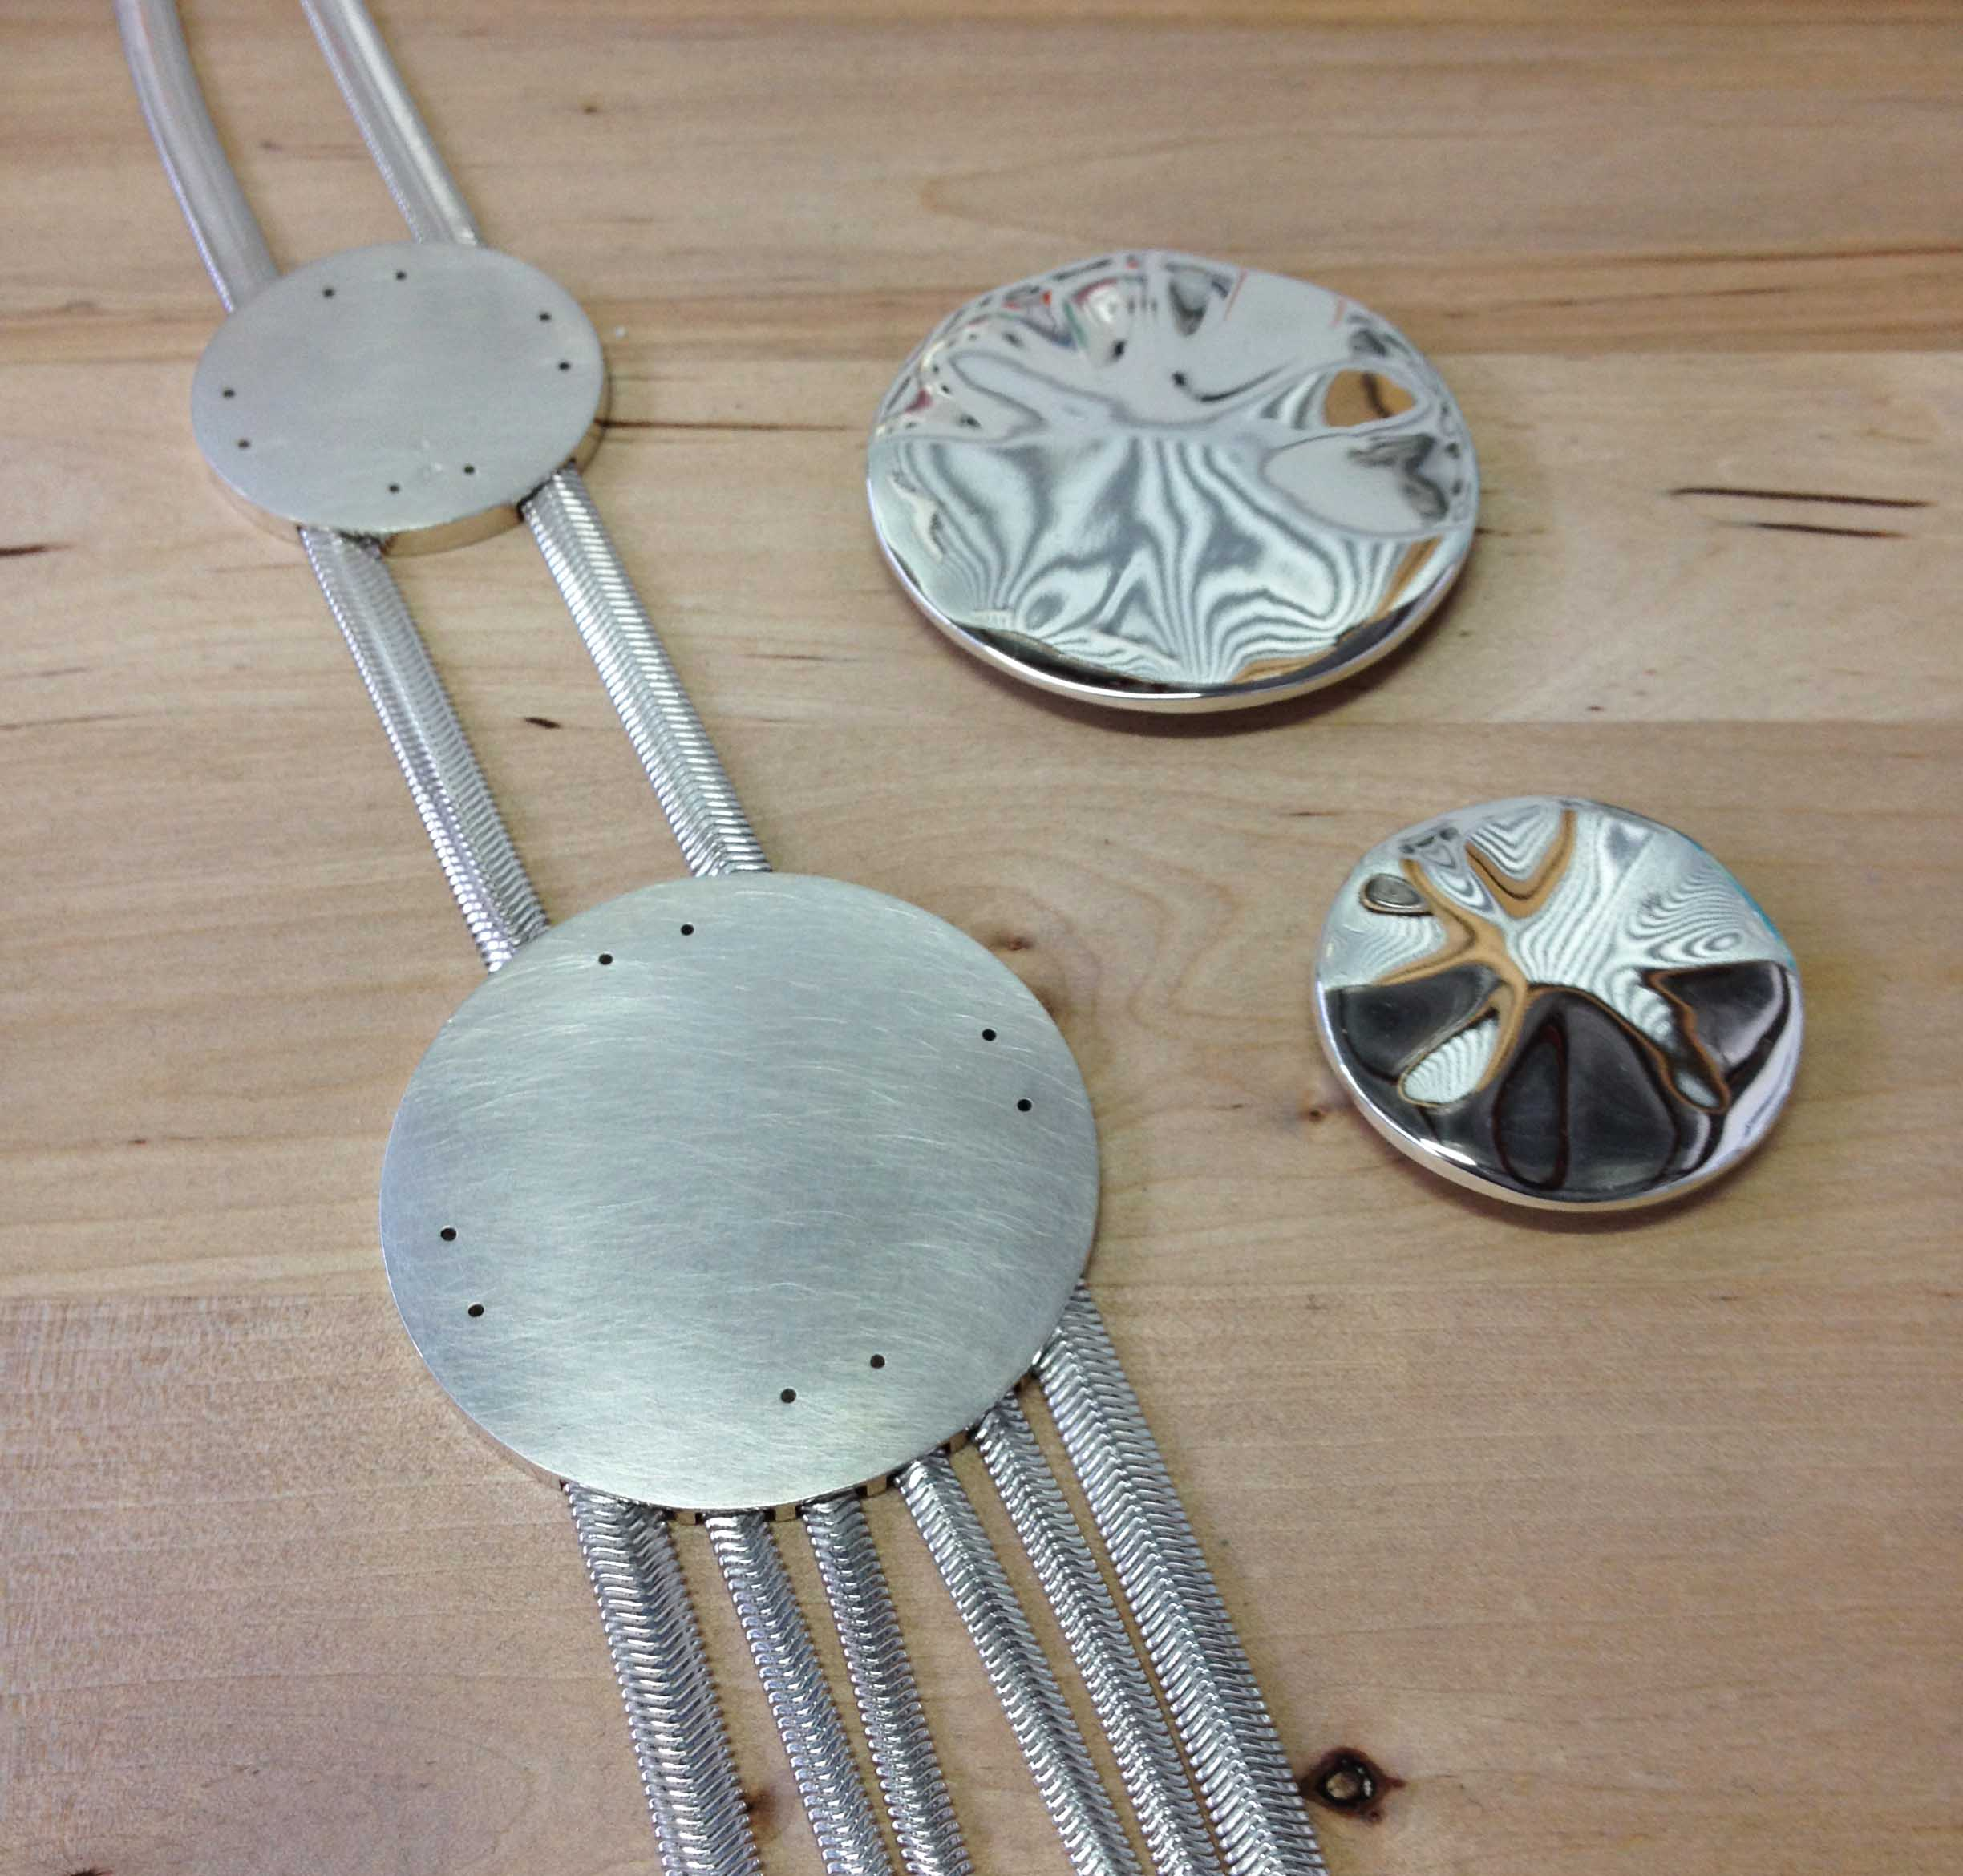 The necklace is all ready to be riveted. I decided to give the backing plates a brushed finish for a bit of contrast against the shiny chain and feature disks.